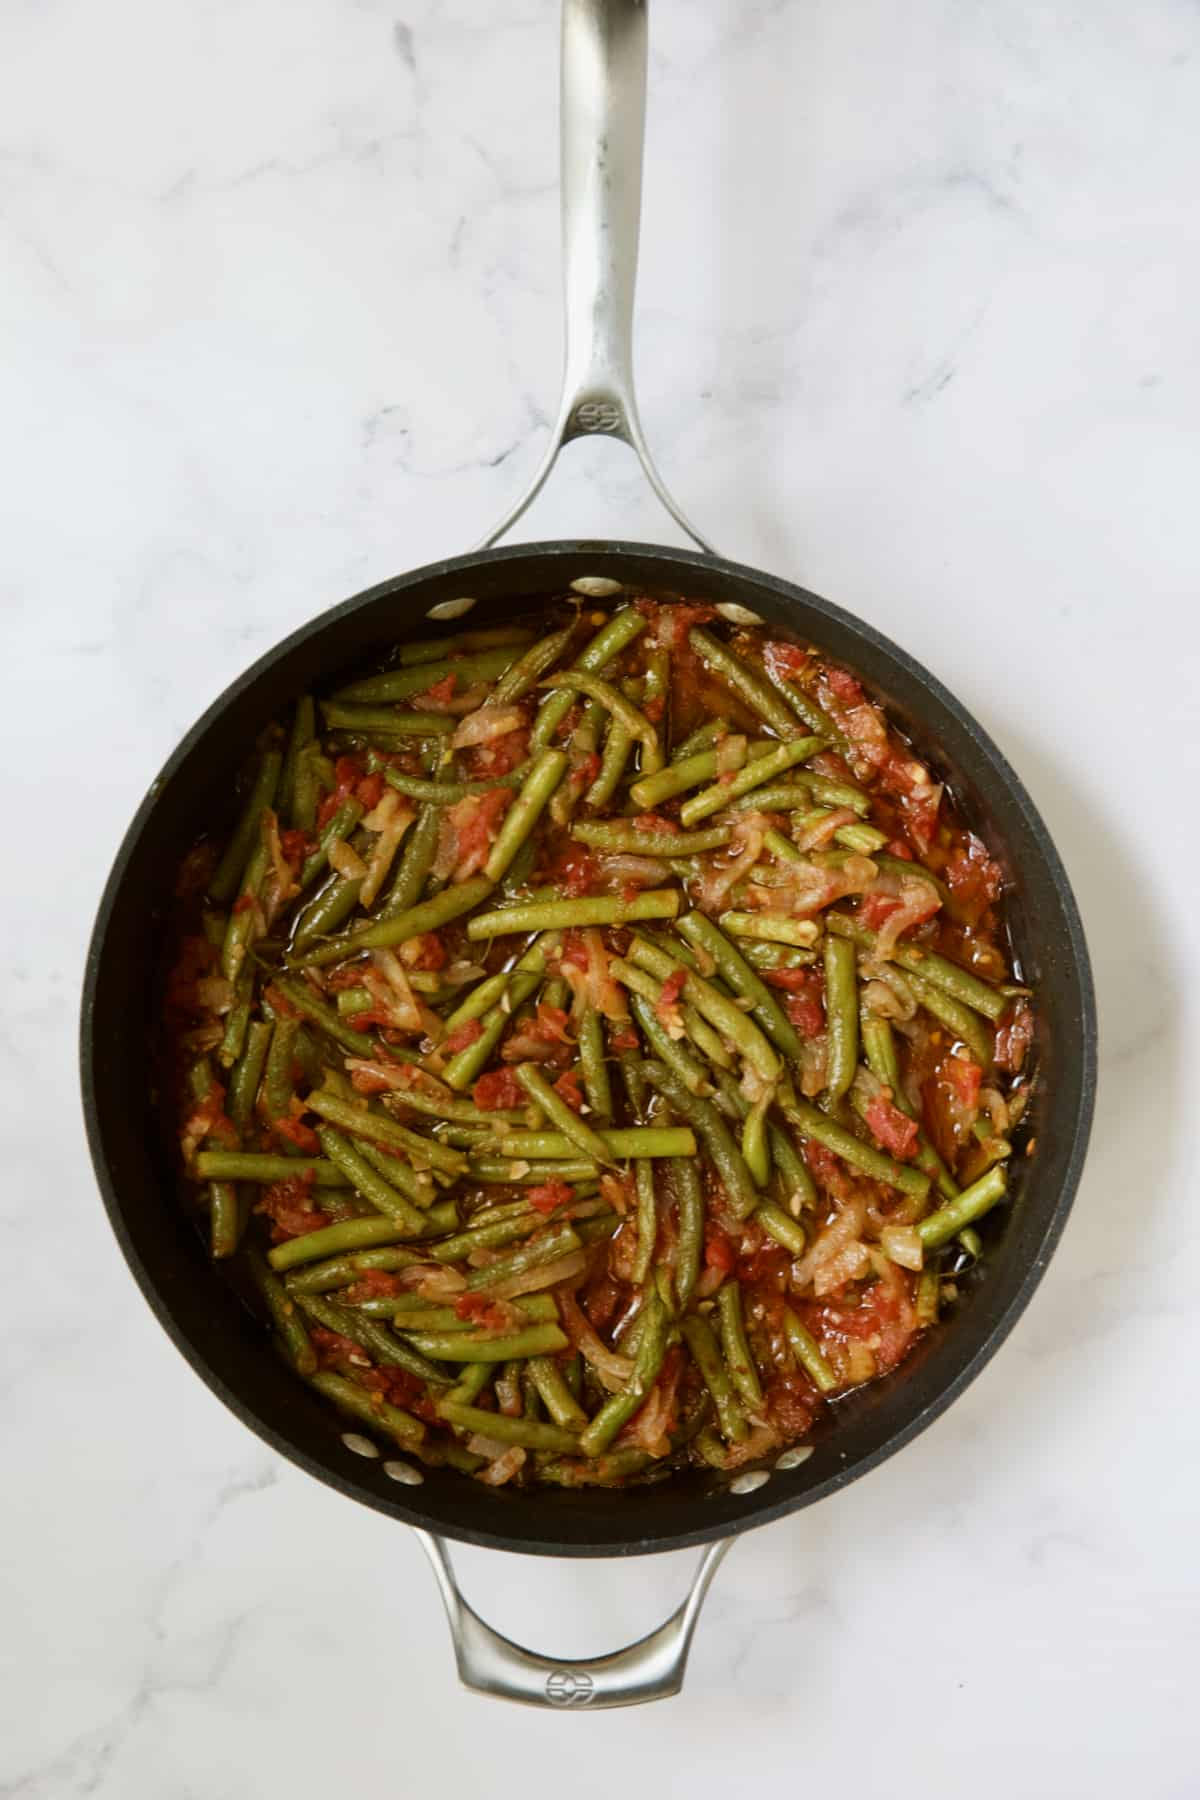 Cooked green beans and tomatoes in skillet.